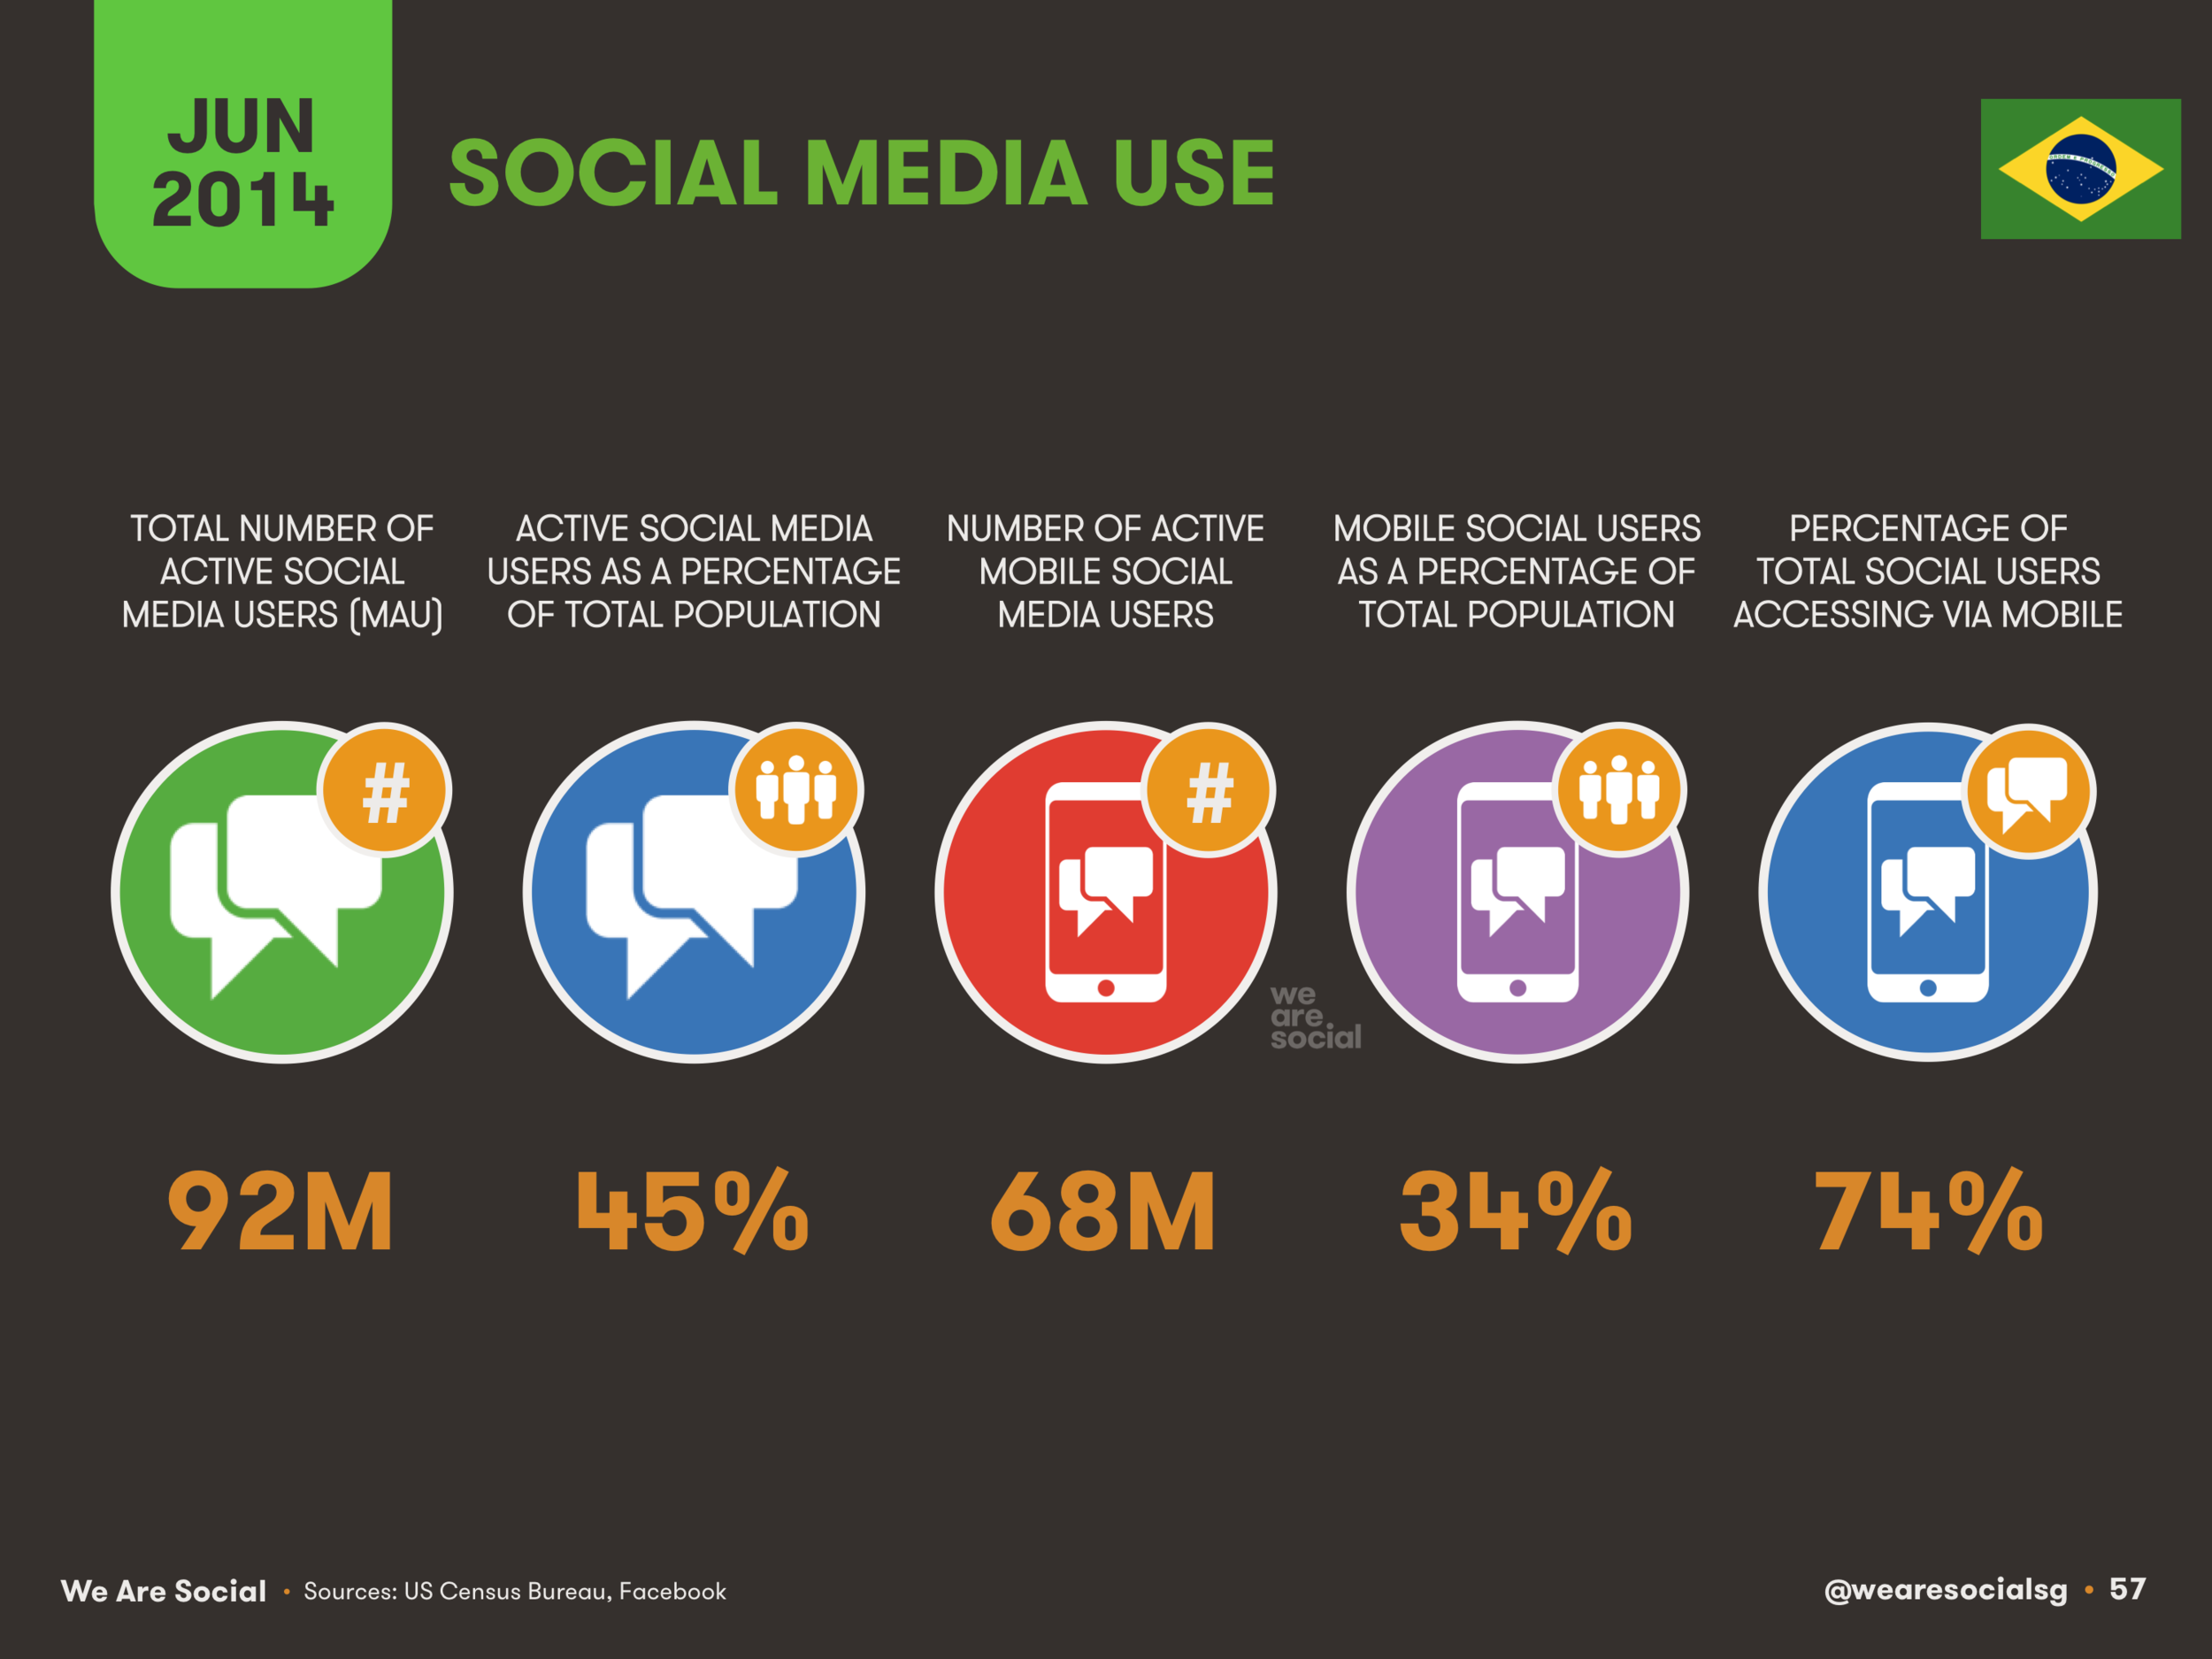 57 Social Media Use in Brazil 2014 - We Are Social 1.png